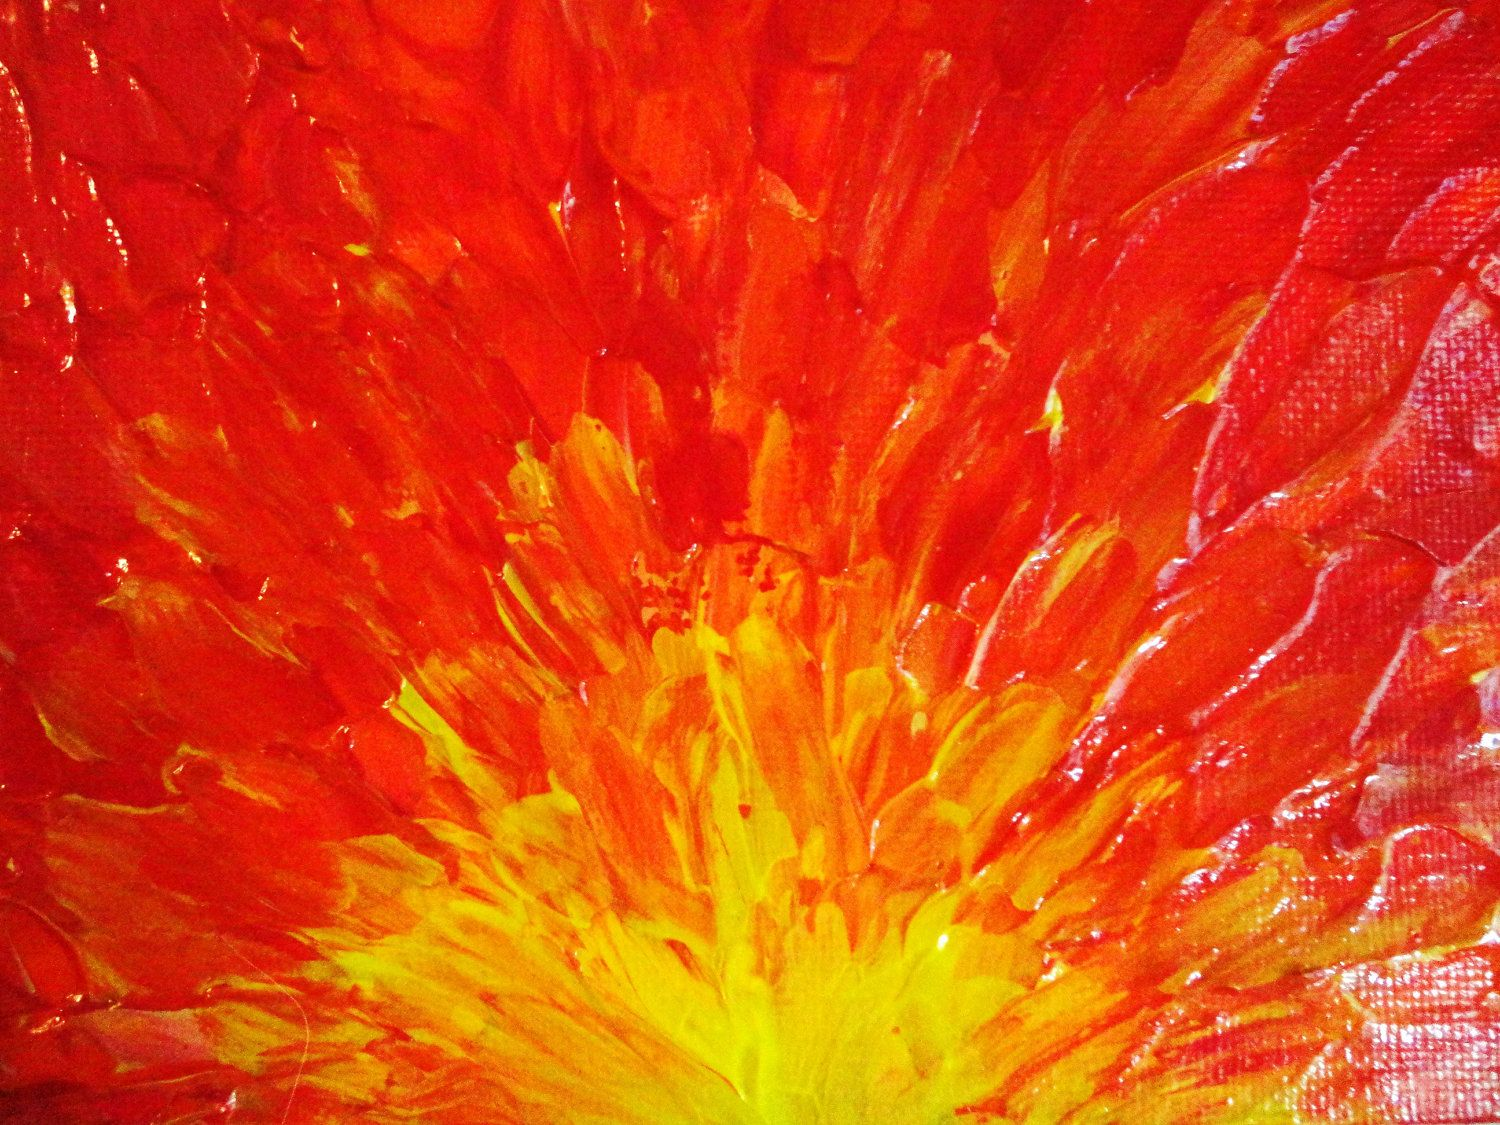 Red And Orange Painting Fiery Galaxy Painting  Google Search  Fire  Pinterest  Galaxy .